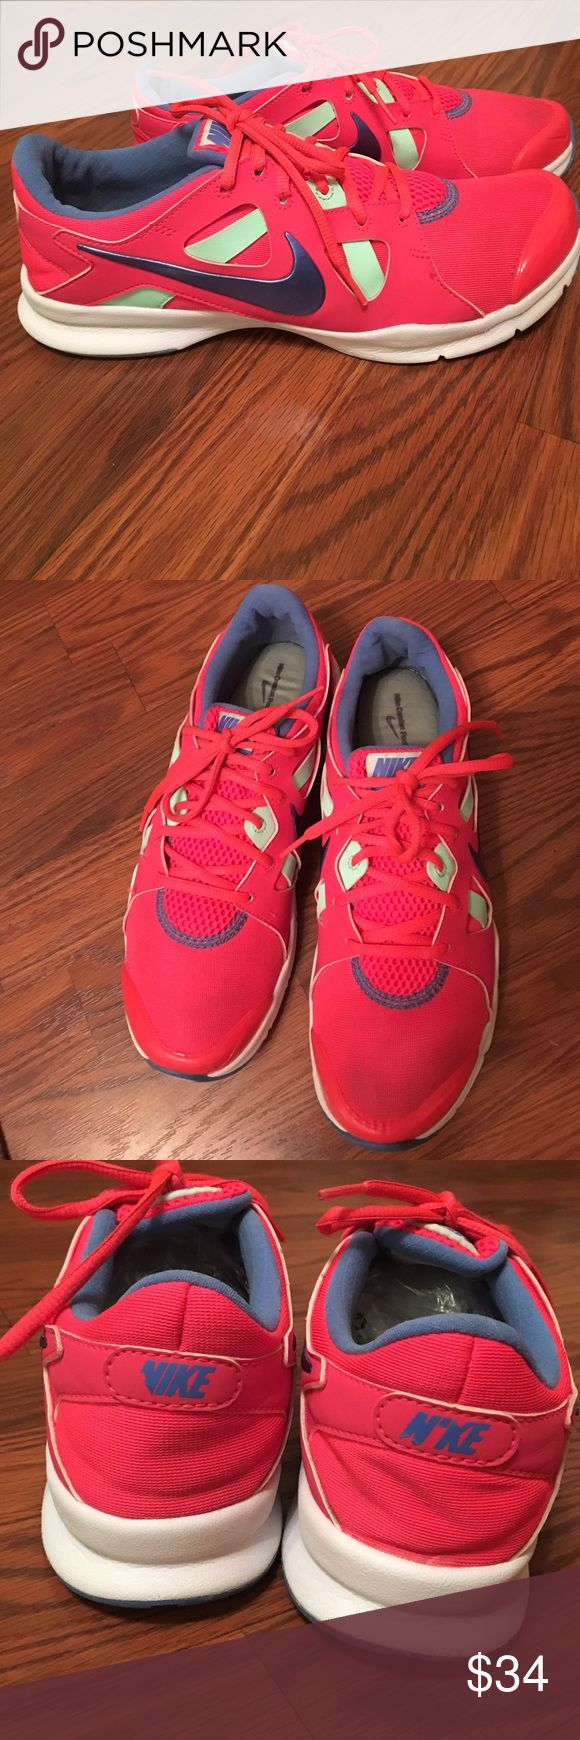 Women's Nike Training Shoes Worn a few times but in great condition! Nike Comfort Footbed, Size 9 Nike Shoes Athletic Shoes